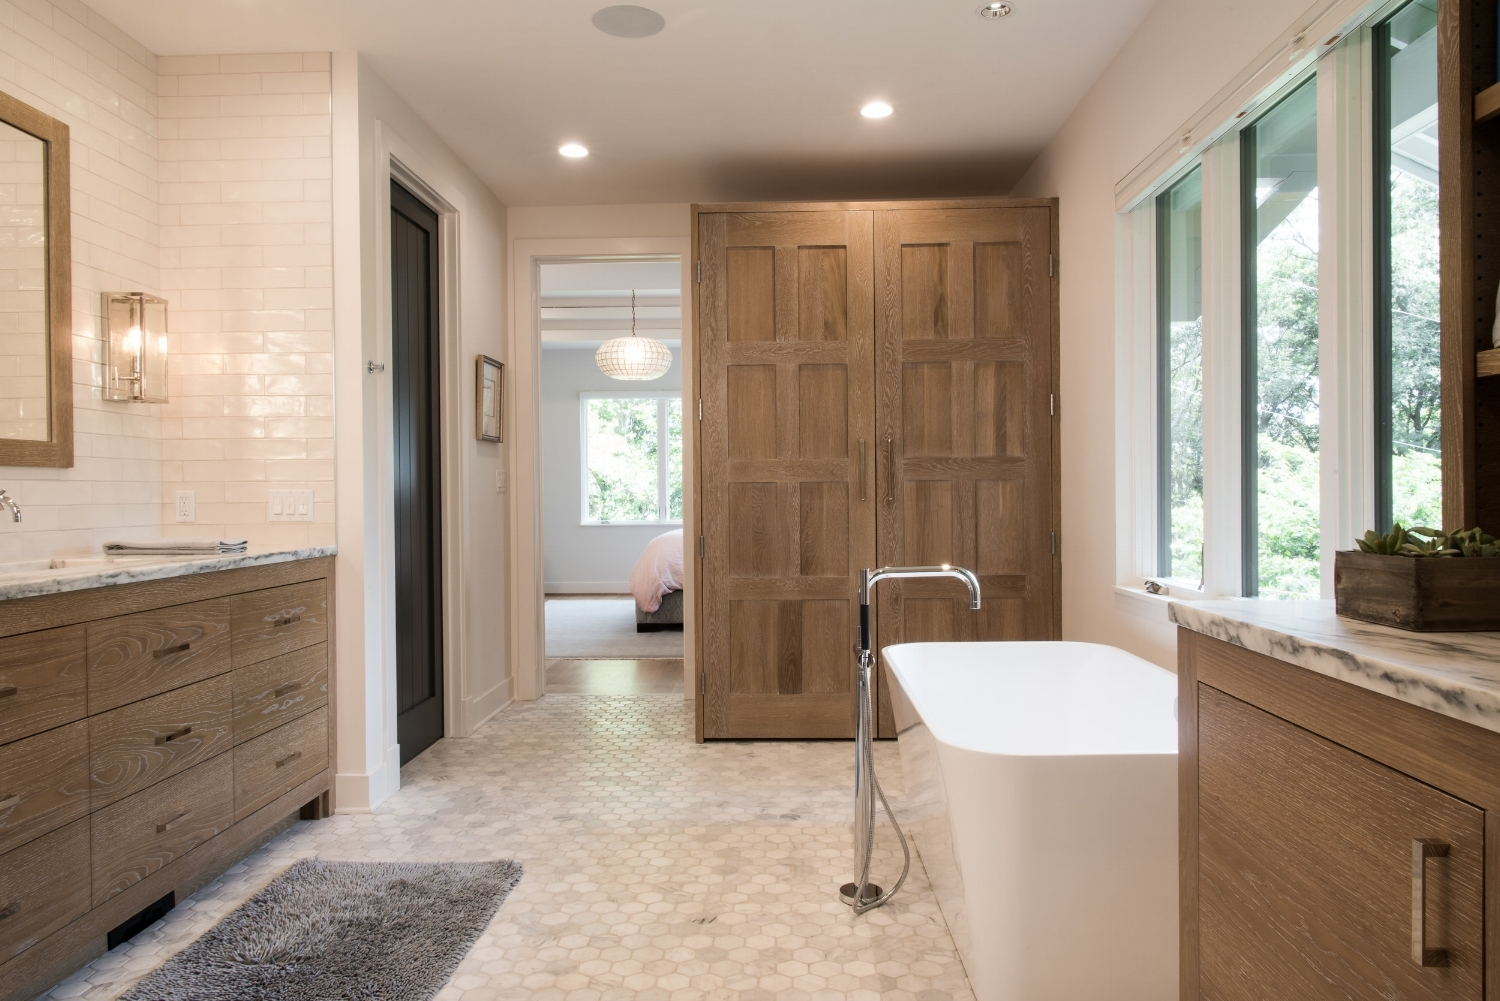 Matthews - Oak Valley kitchen and bath-8799.jpg